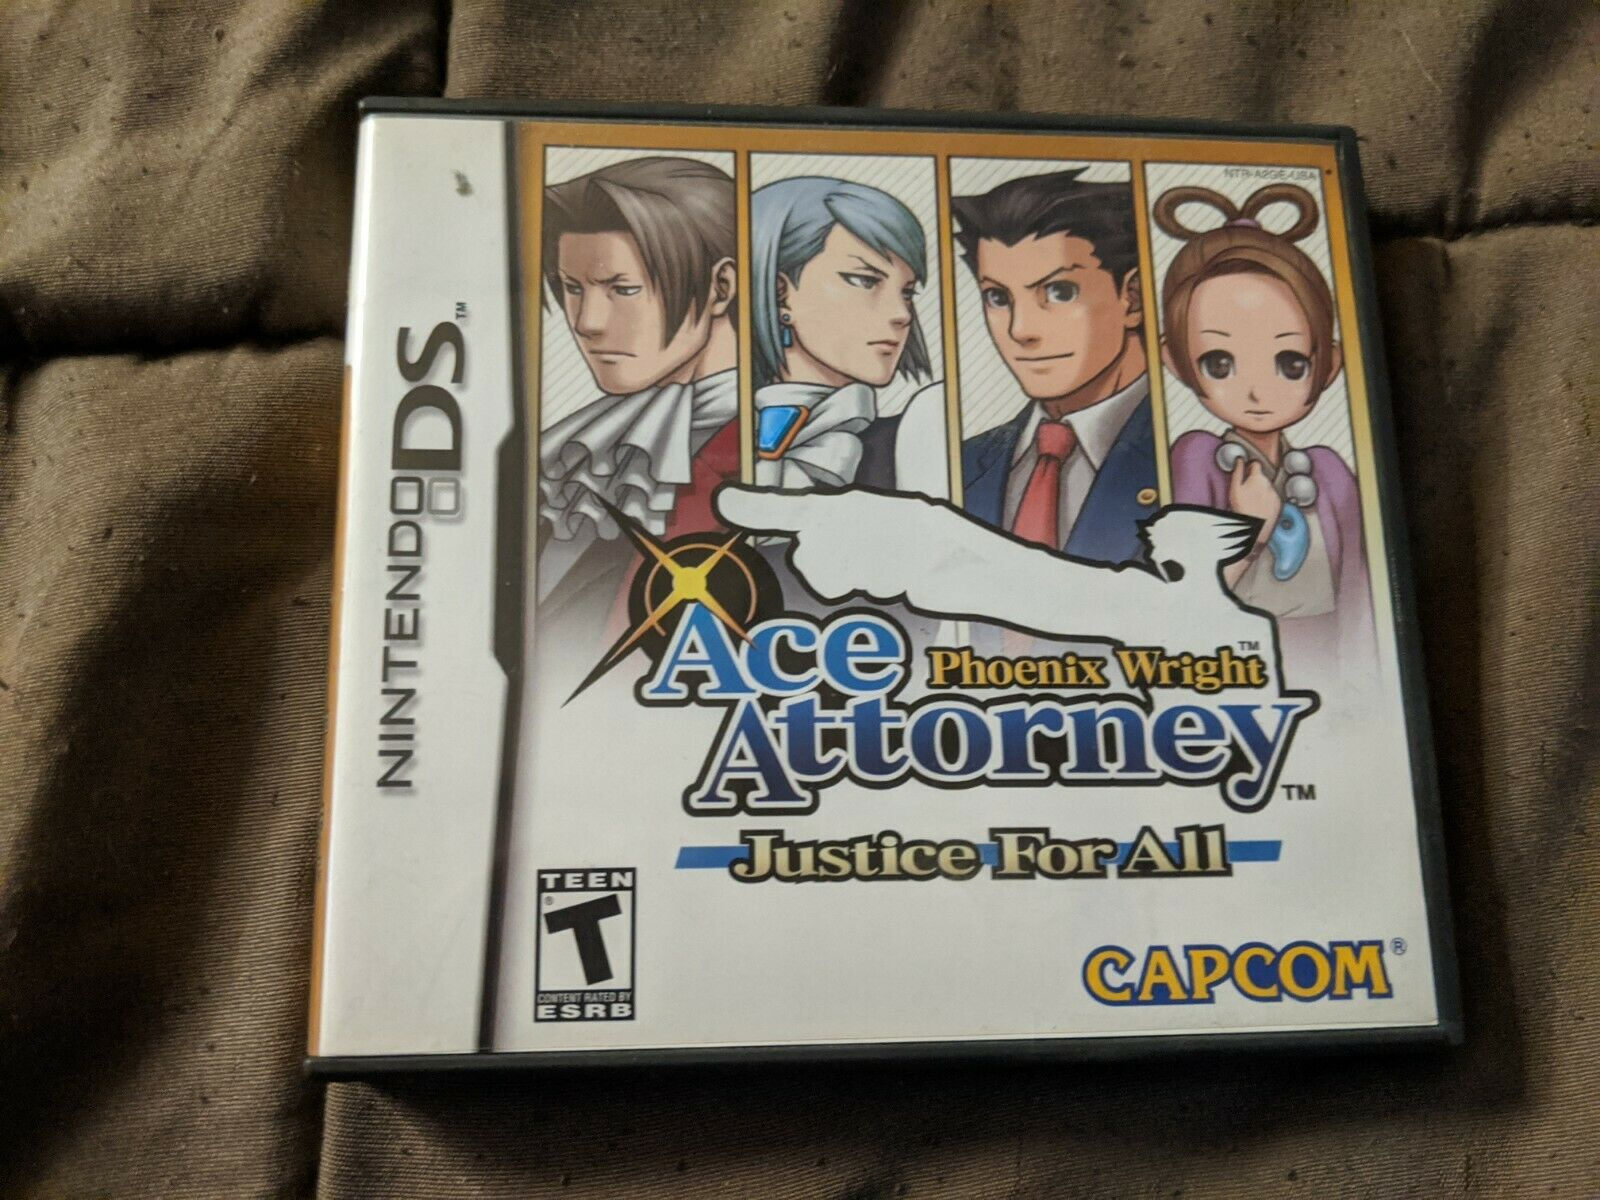 Ace Attorney Phoenix Wight Justice for All - Nintendo DS 1